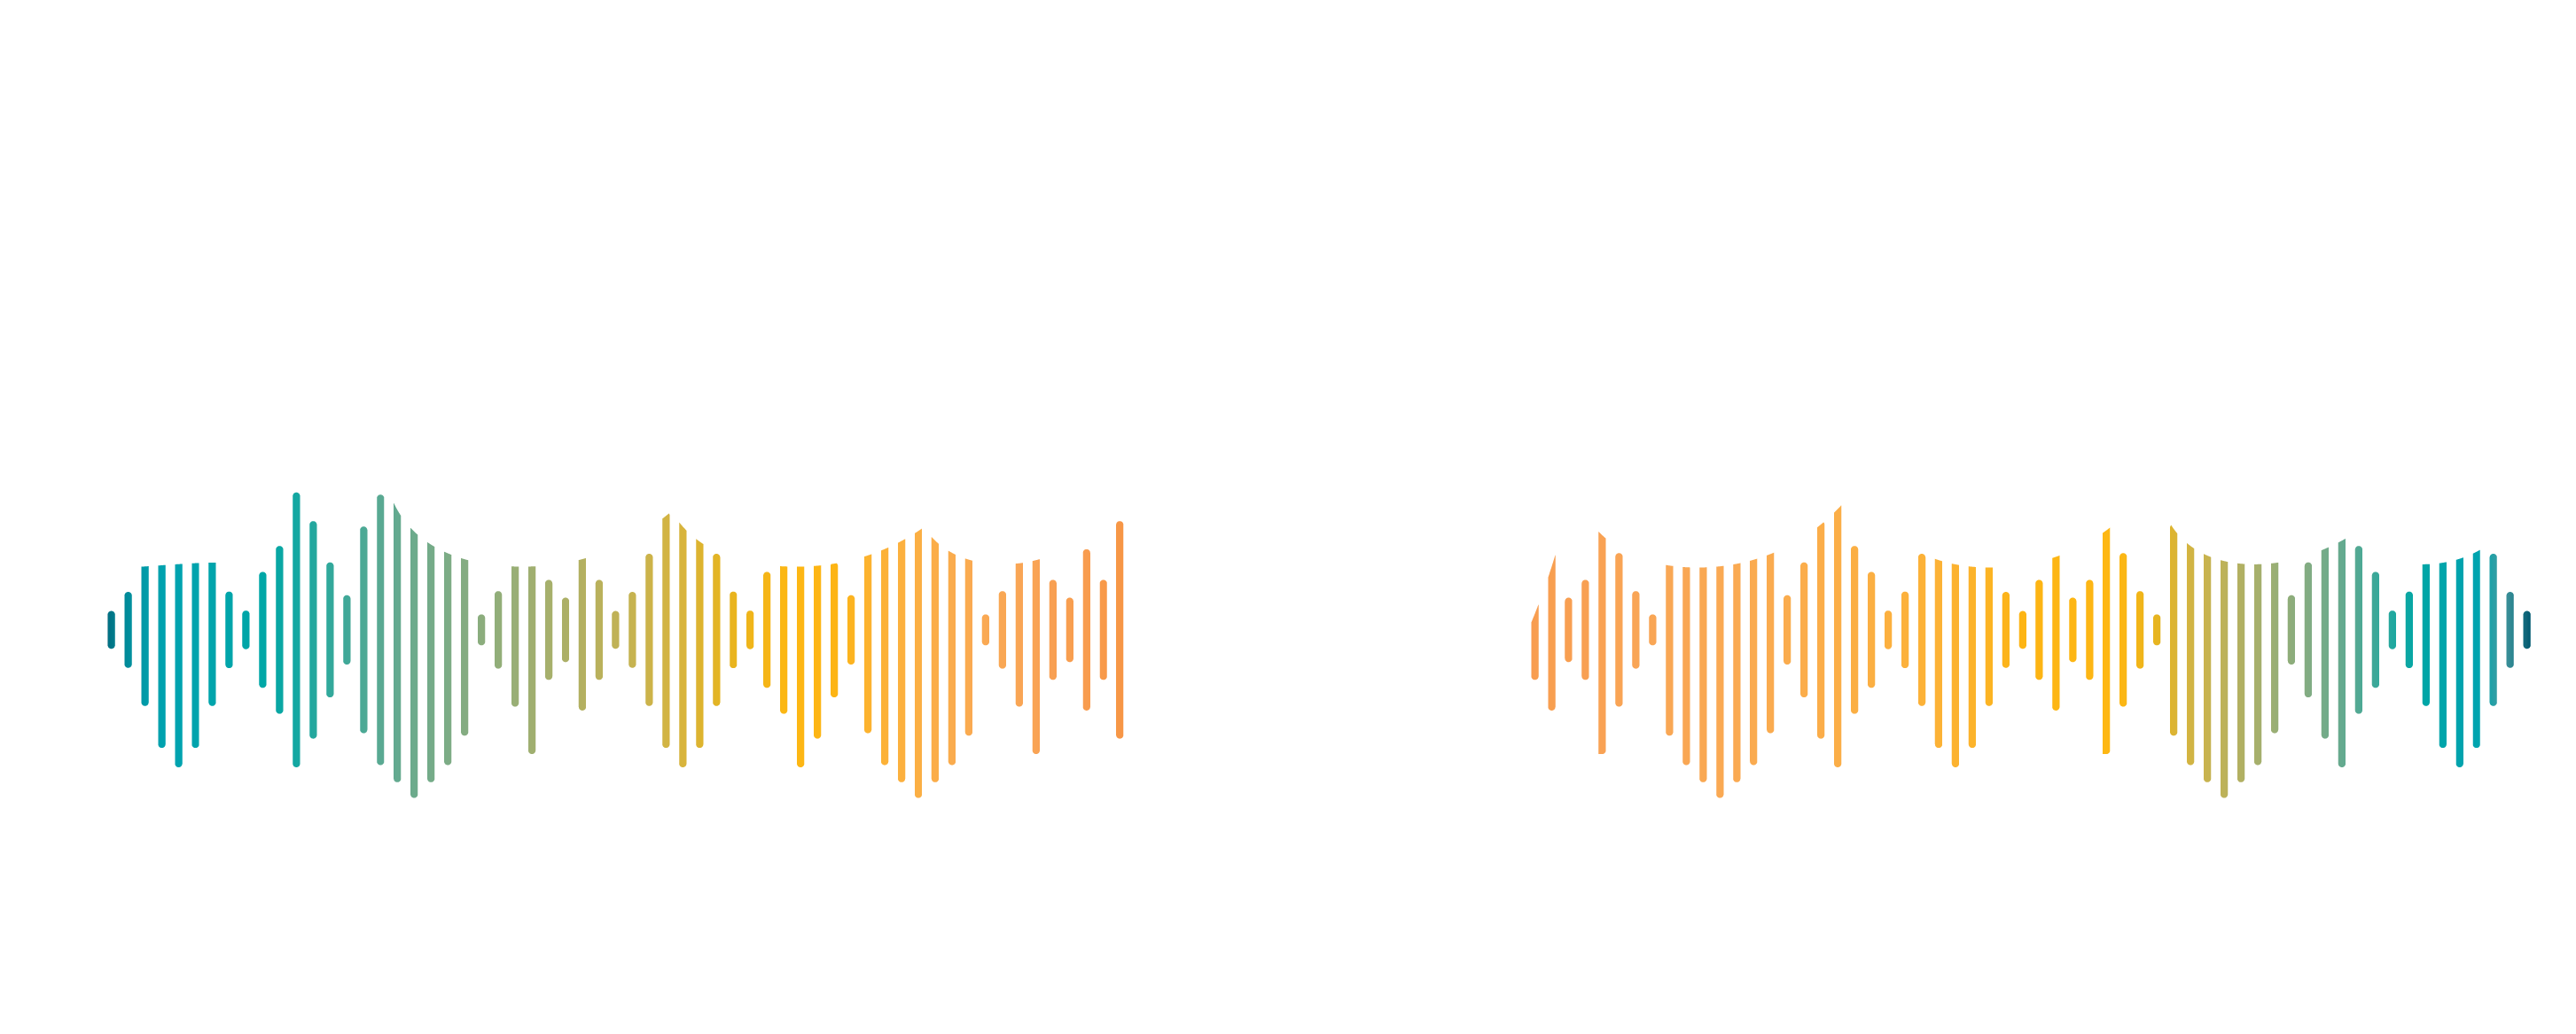 Peel Good Marketing Podcast | Clementine Creative Agency